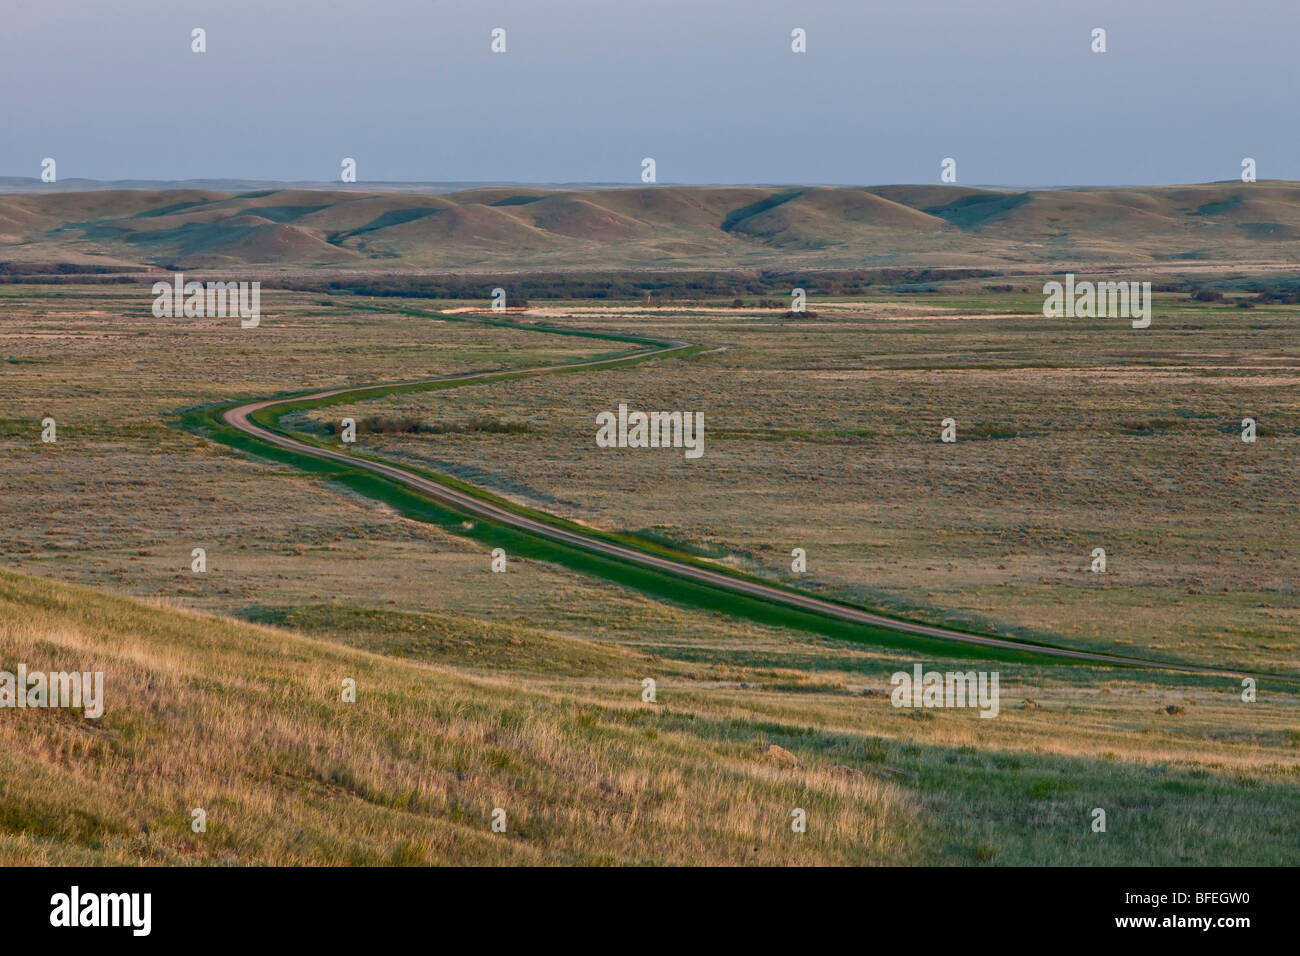 Landscape of the Frenchman River Valley in the West Block of Grasslands National Park, Saskatchewan, Canada - Stock Image